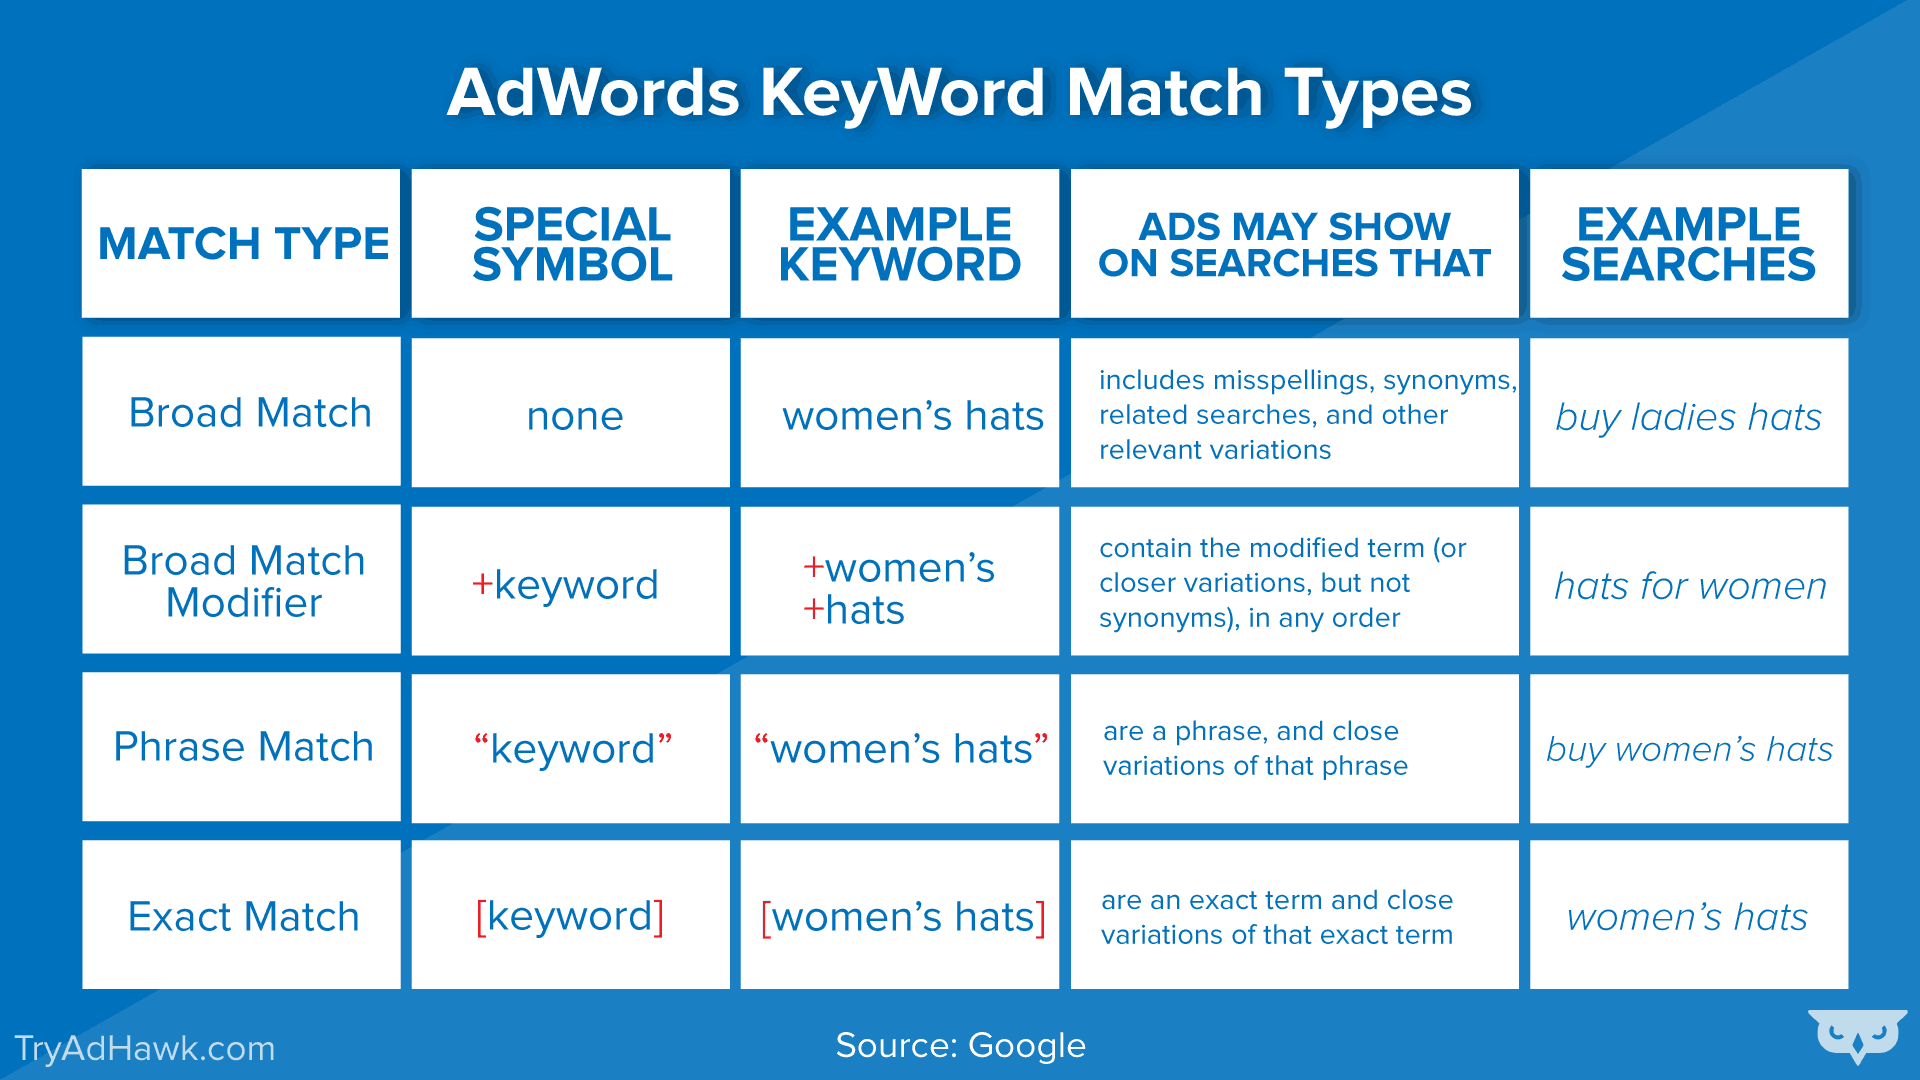 AdWords keyword match types compared to the broad match modifier.